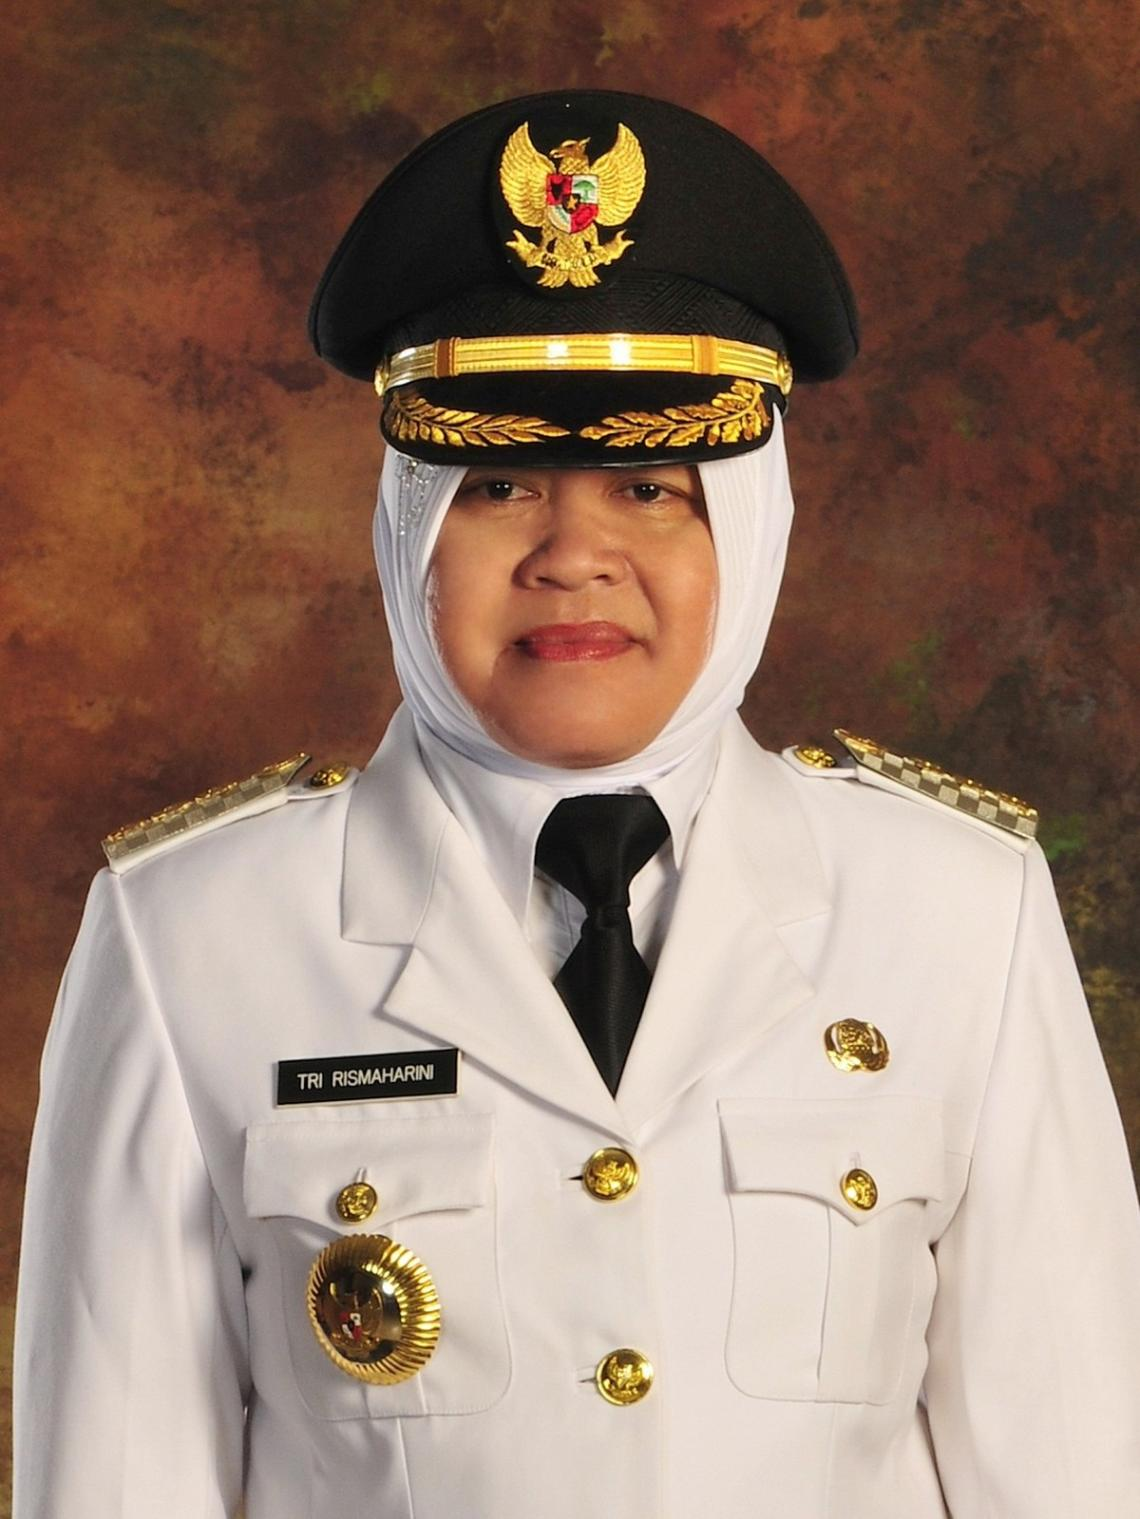 Mayor of Surabaya and host of the event, Ibu Risma